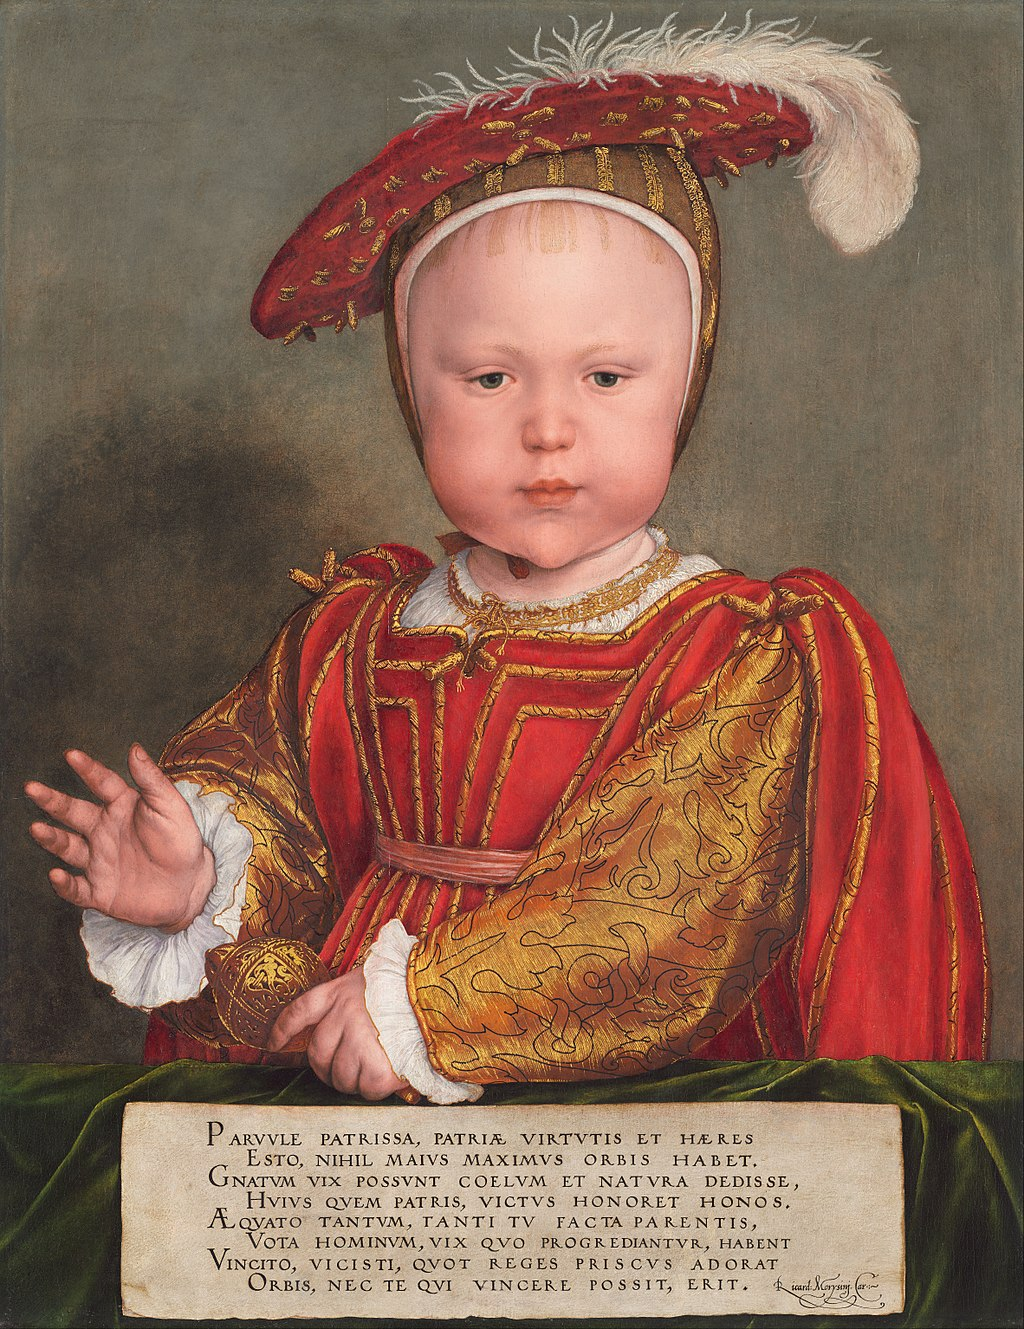 King Edward VI of England as a child.